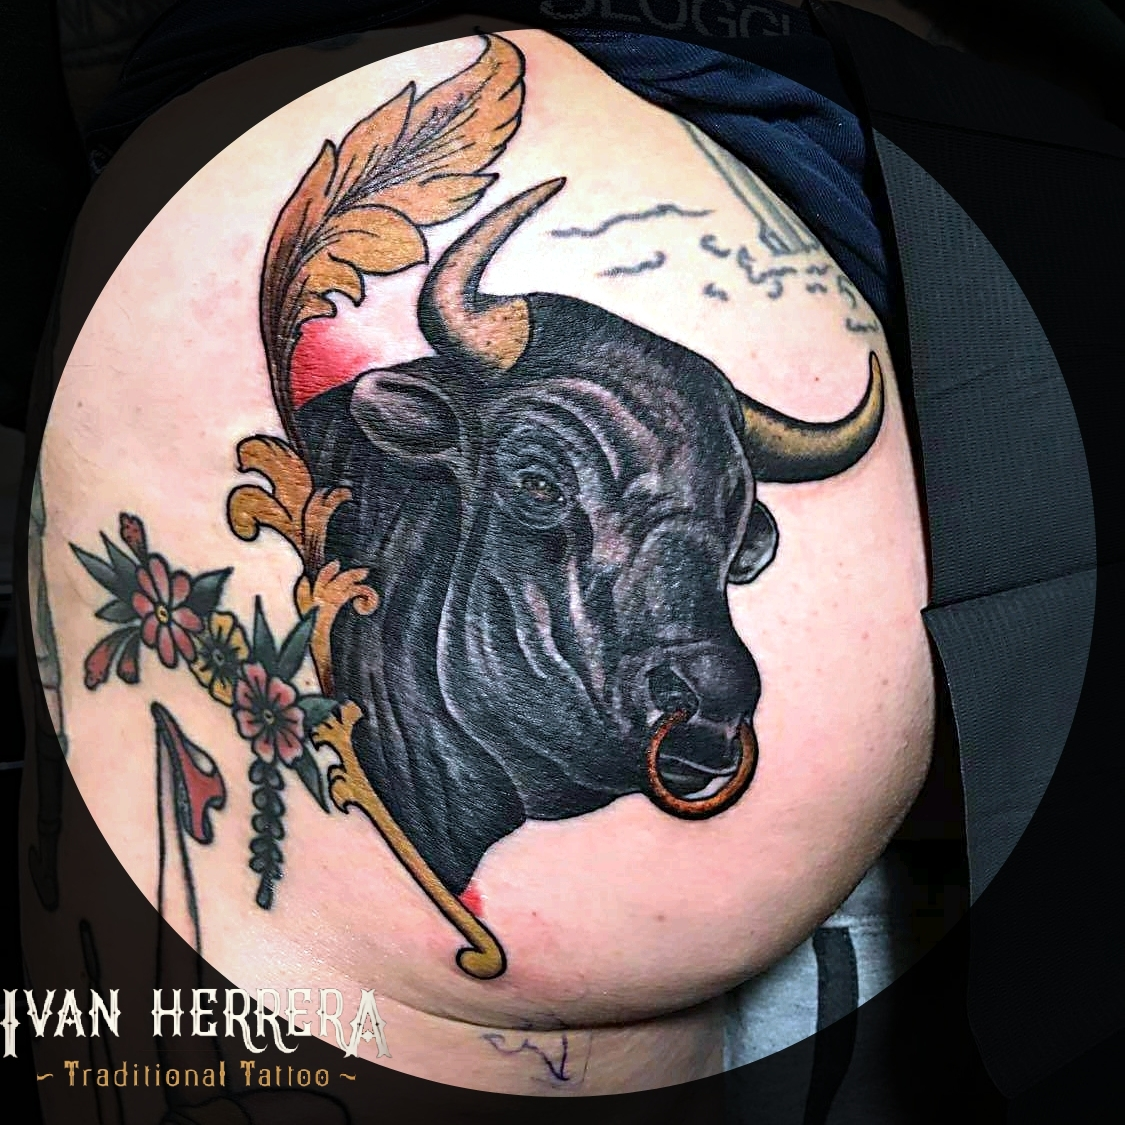 Ivan-Herrera-Traditional-Tattoo-Berlin-walk-in